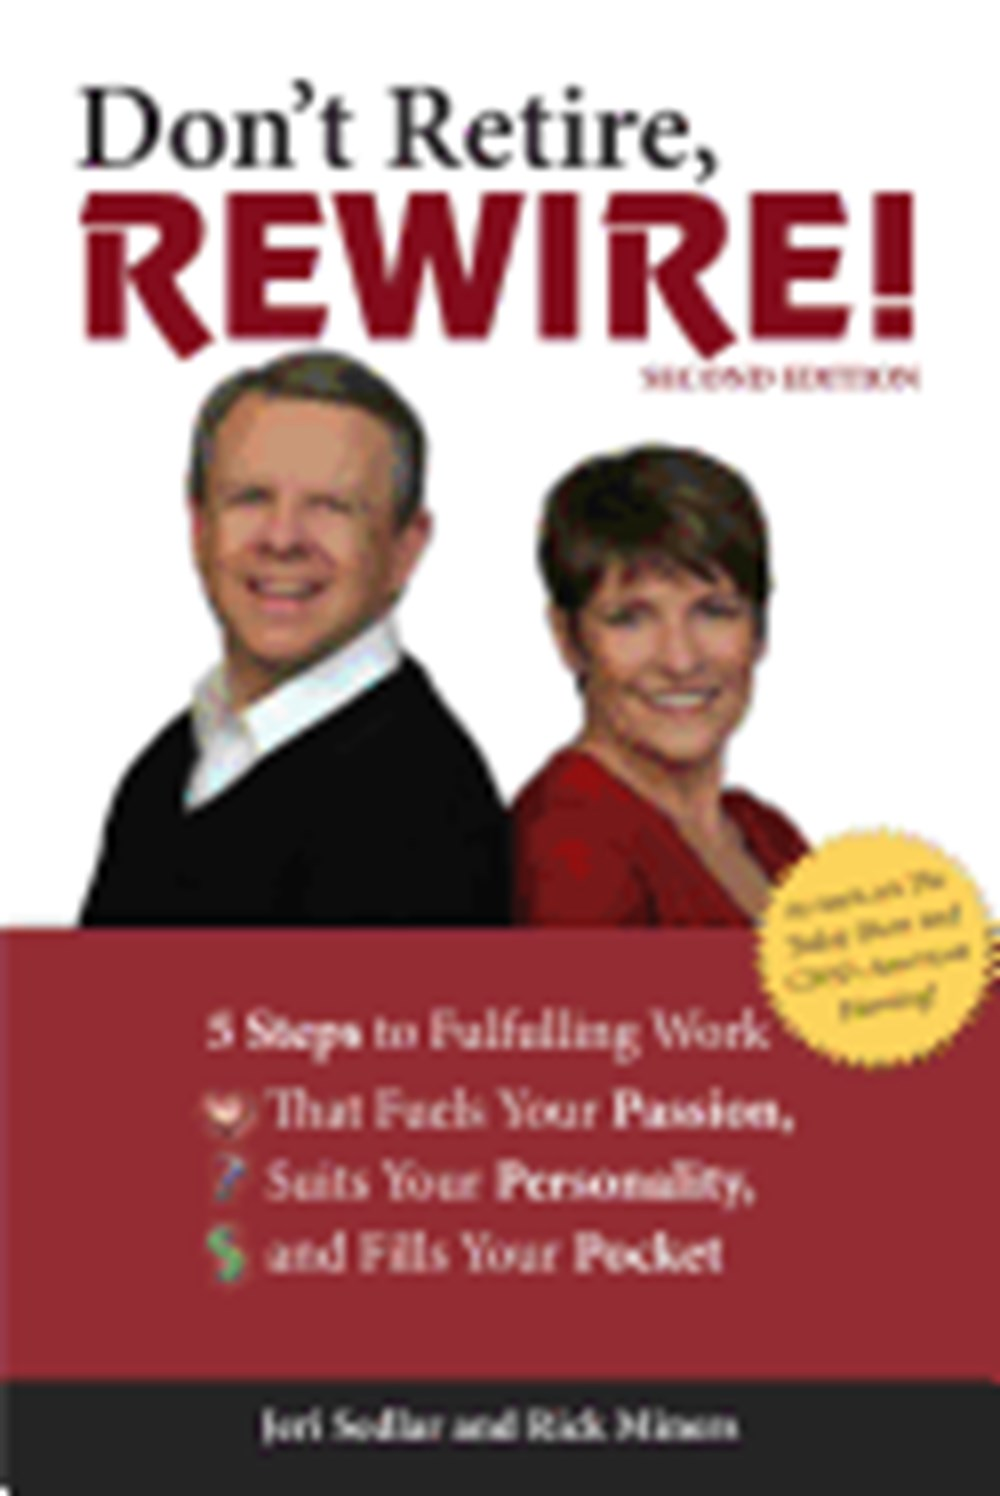 Don't Retire, Rewire! 5 Steps to Fulfilling Work That Fuels Your Passion, Suits Your Personality, an